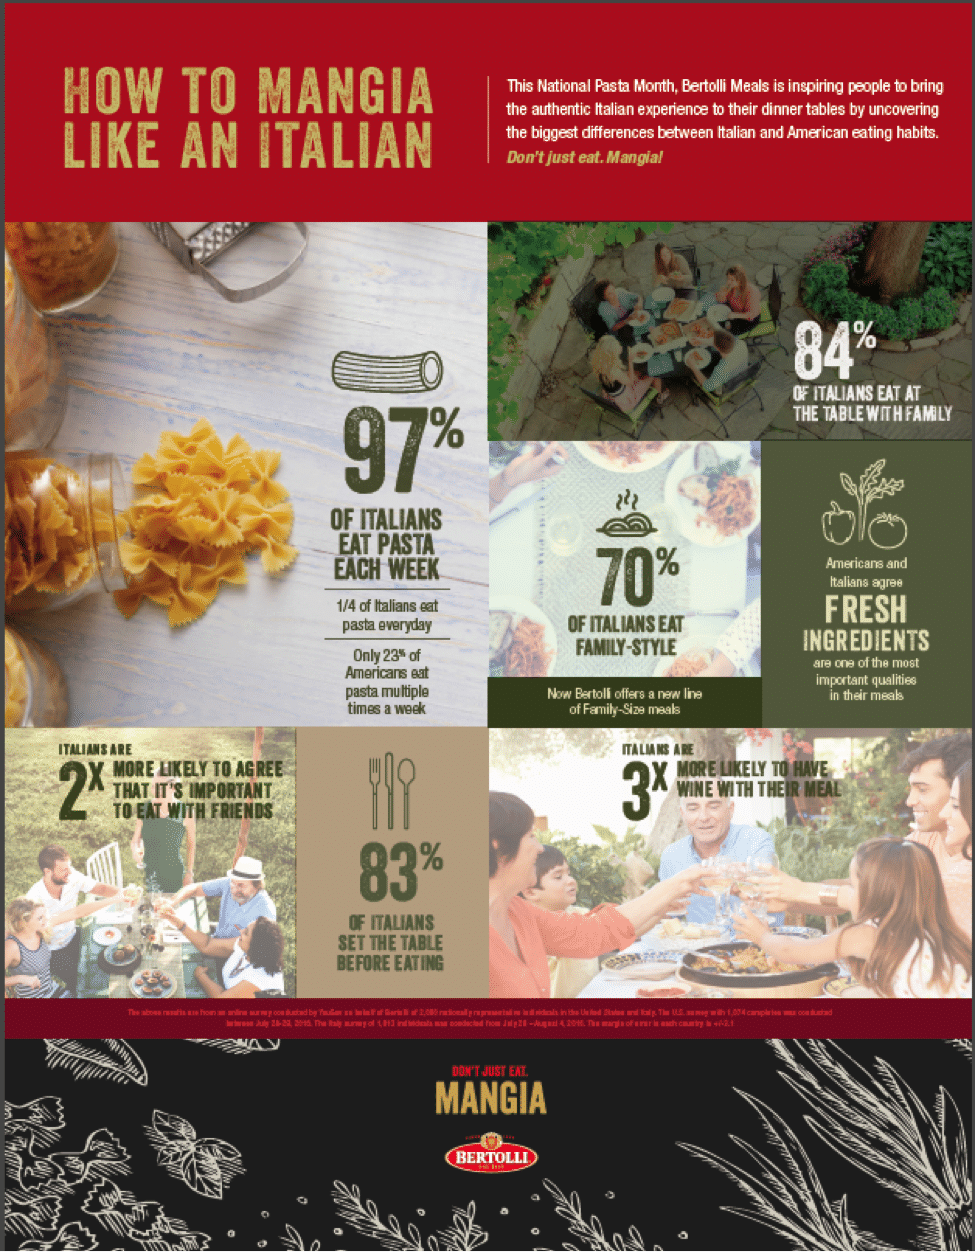 Pasta Infographic - This National Pasta Month, Bertolli Meals is inspiring people to bring authentic Italian meals and Italian Experiences to their dinner tables. Here are some findings from a recent Italian American survey describing the dining and eating habits of both.